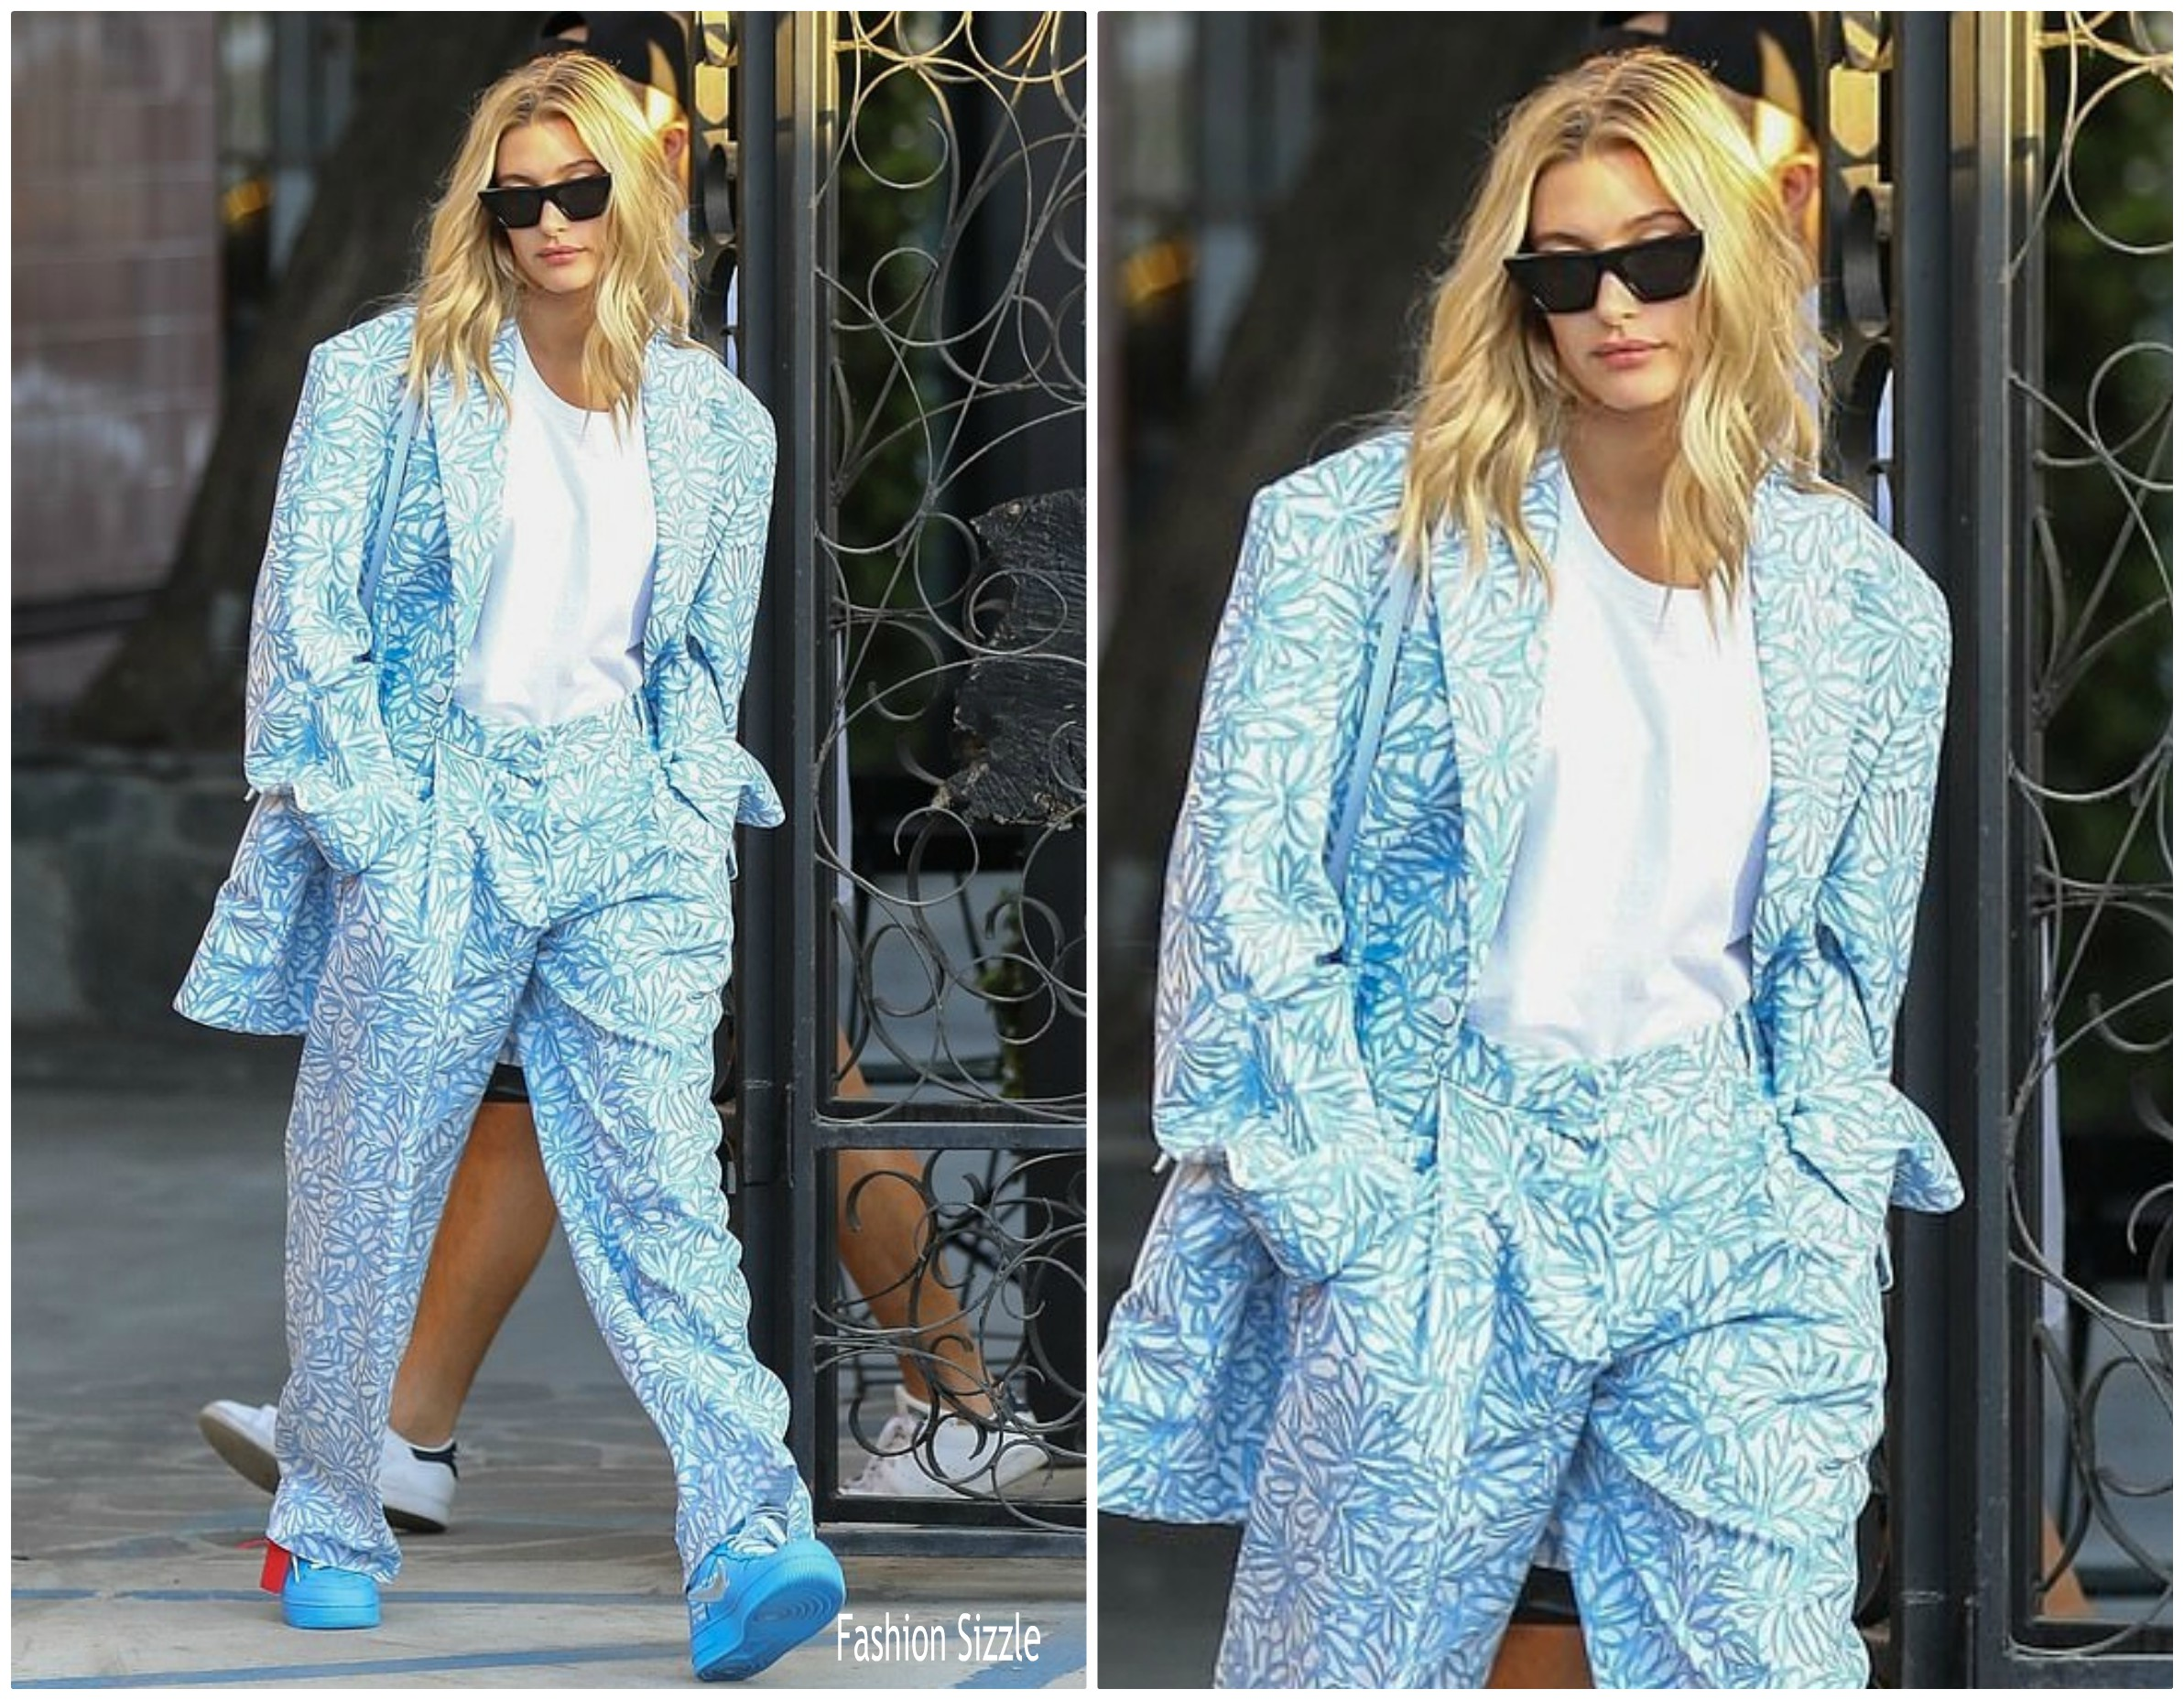 hailey-bieber-in-jacquemus-suit-out-in-los-angeles